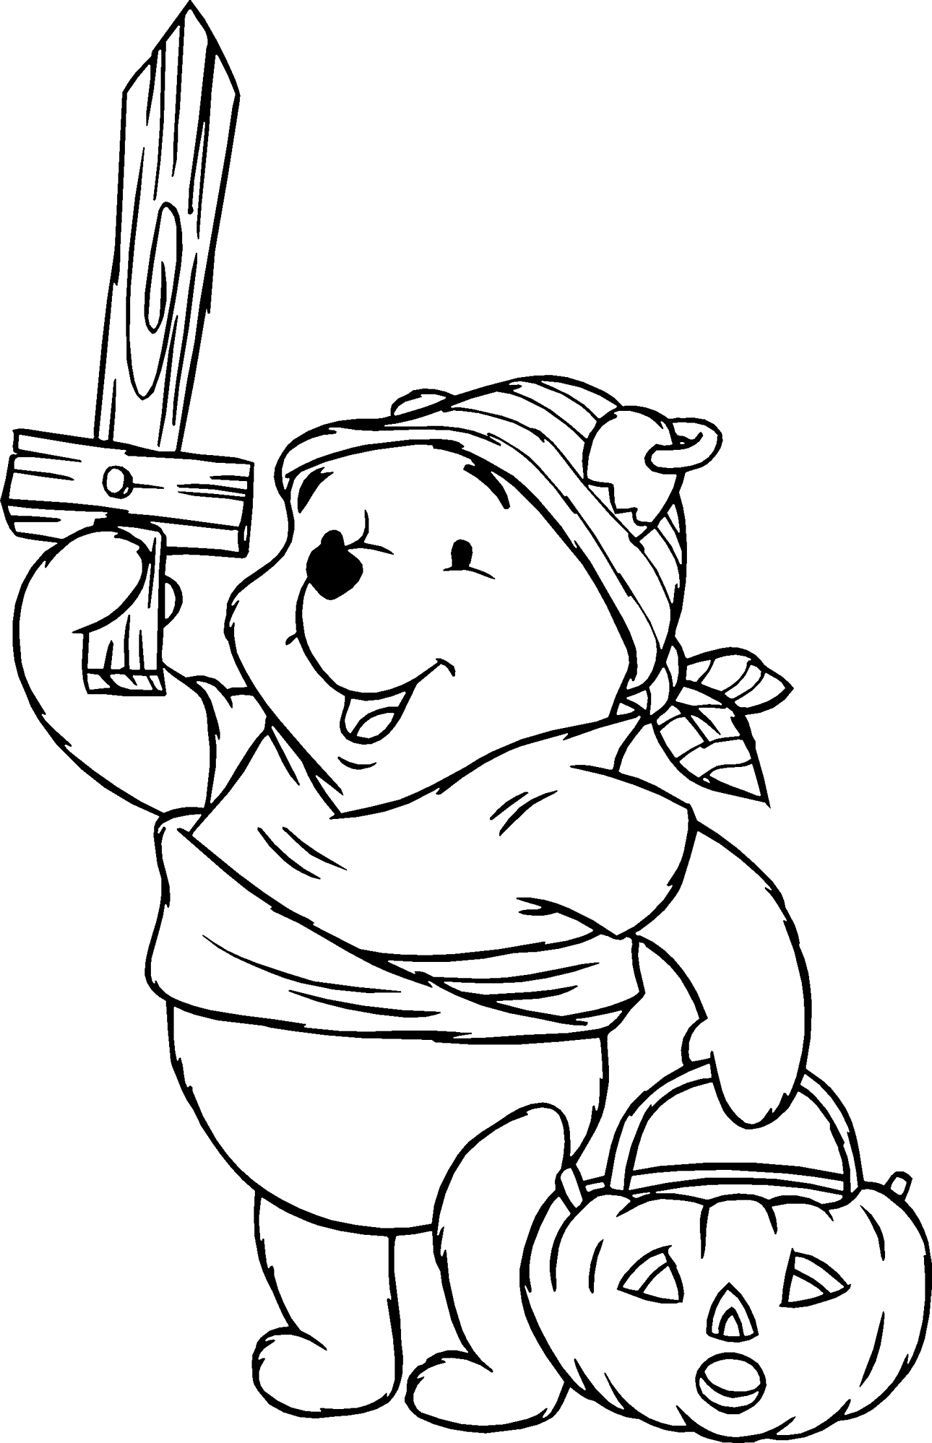 color sheets | Bear Coloring Pages, Free Printable Bear Coloring ...